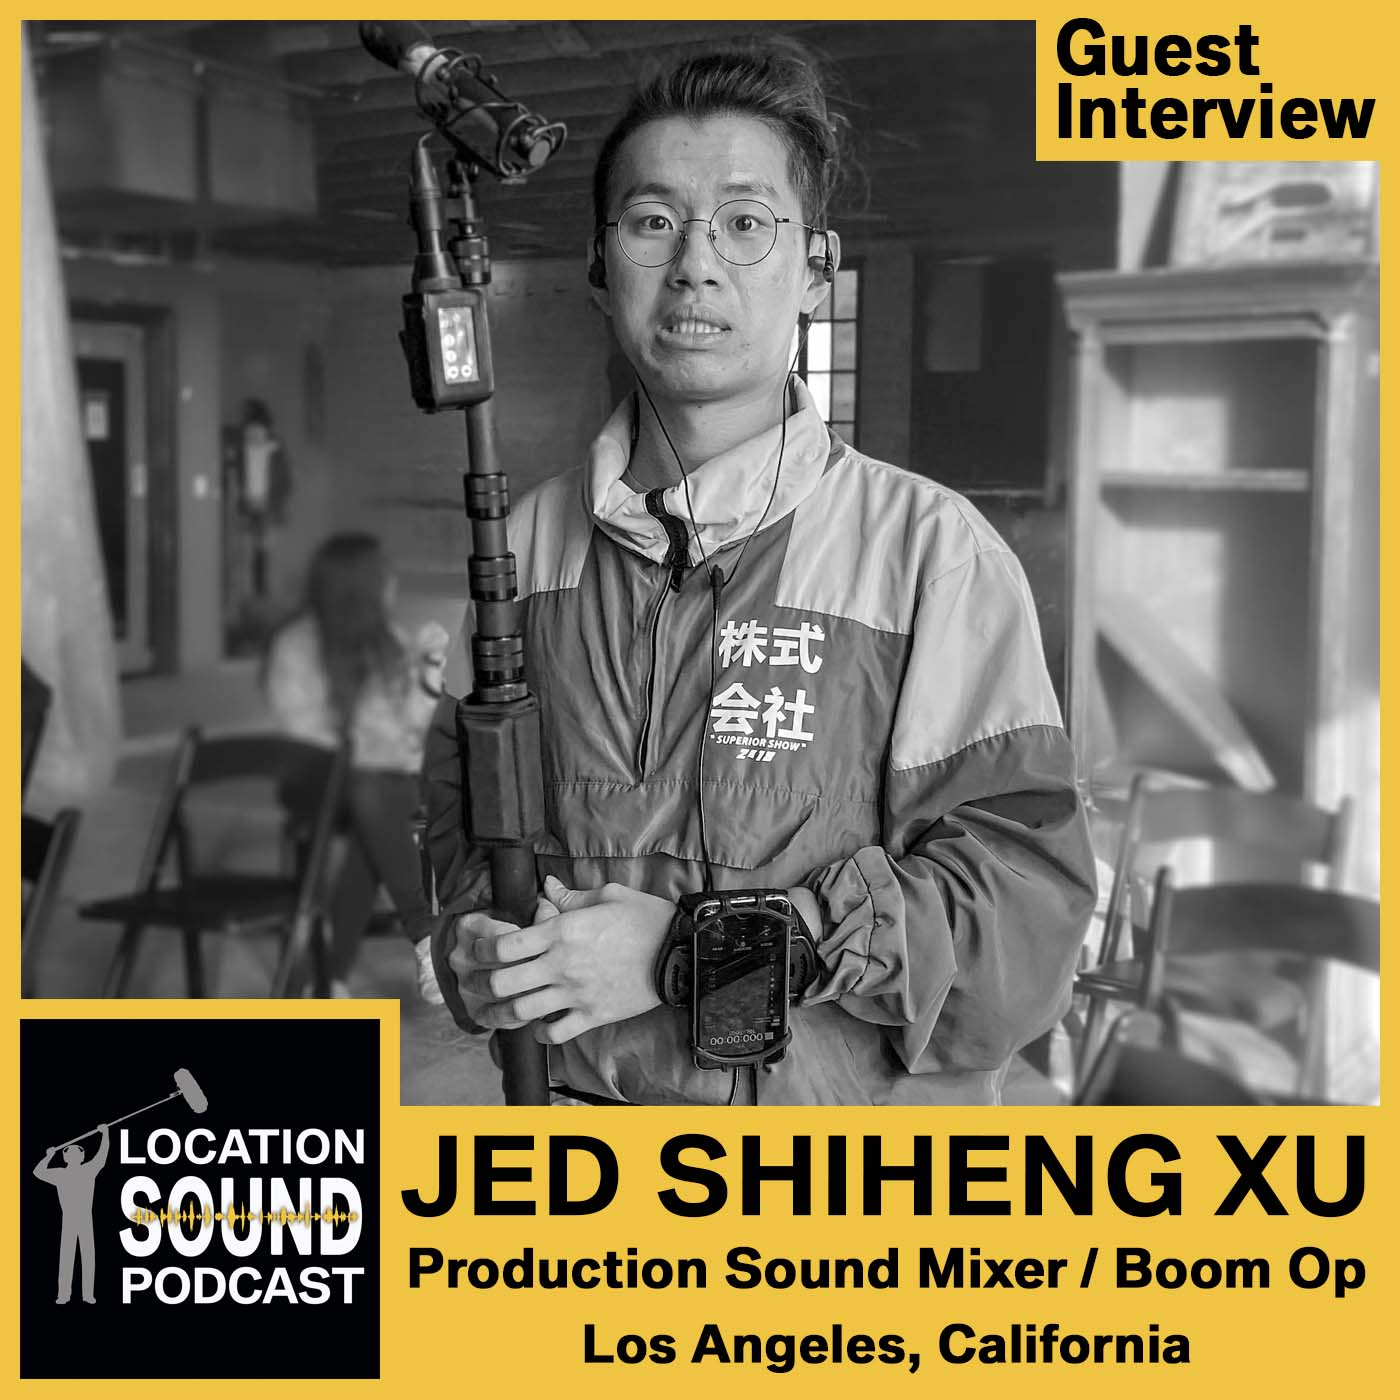 081 Jed Shiheng Xu - Production Sound Mixer based out of Los Angeles, California